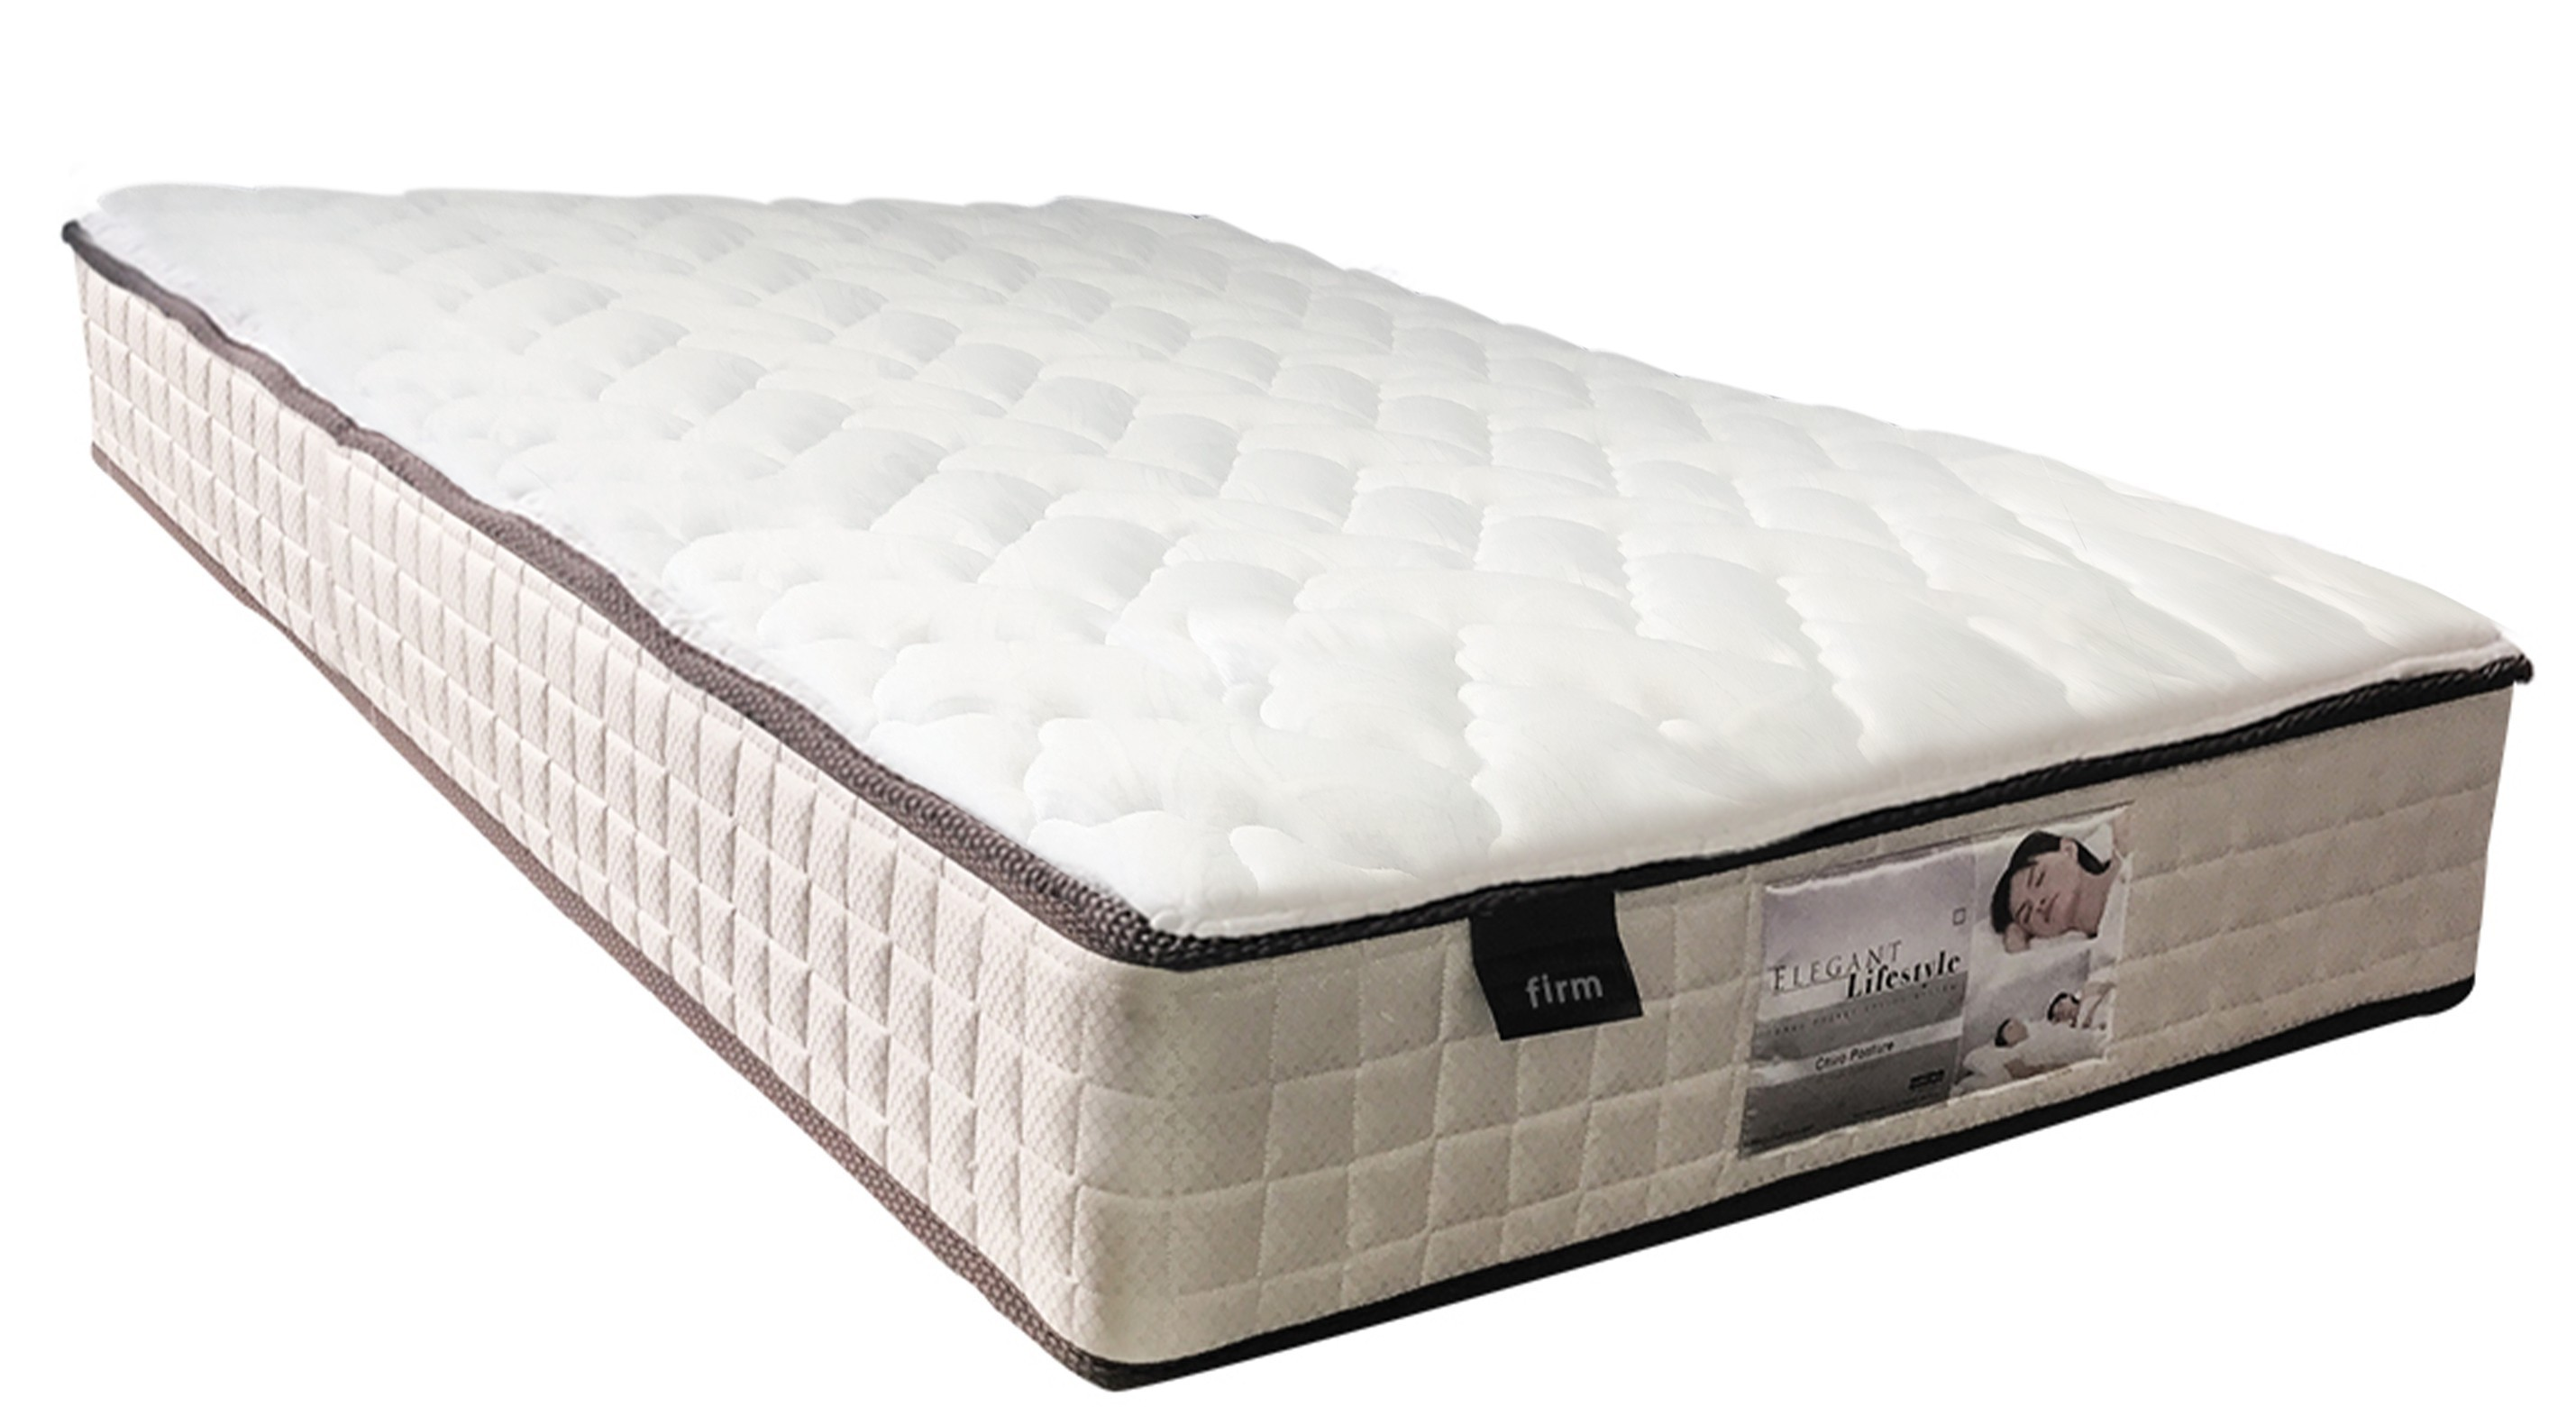 Comfort sleep chiro posture pocket spring firm mattress for Comfort inn mattress brand